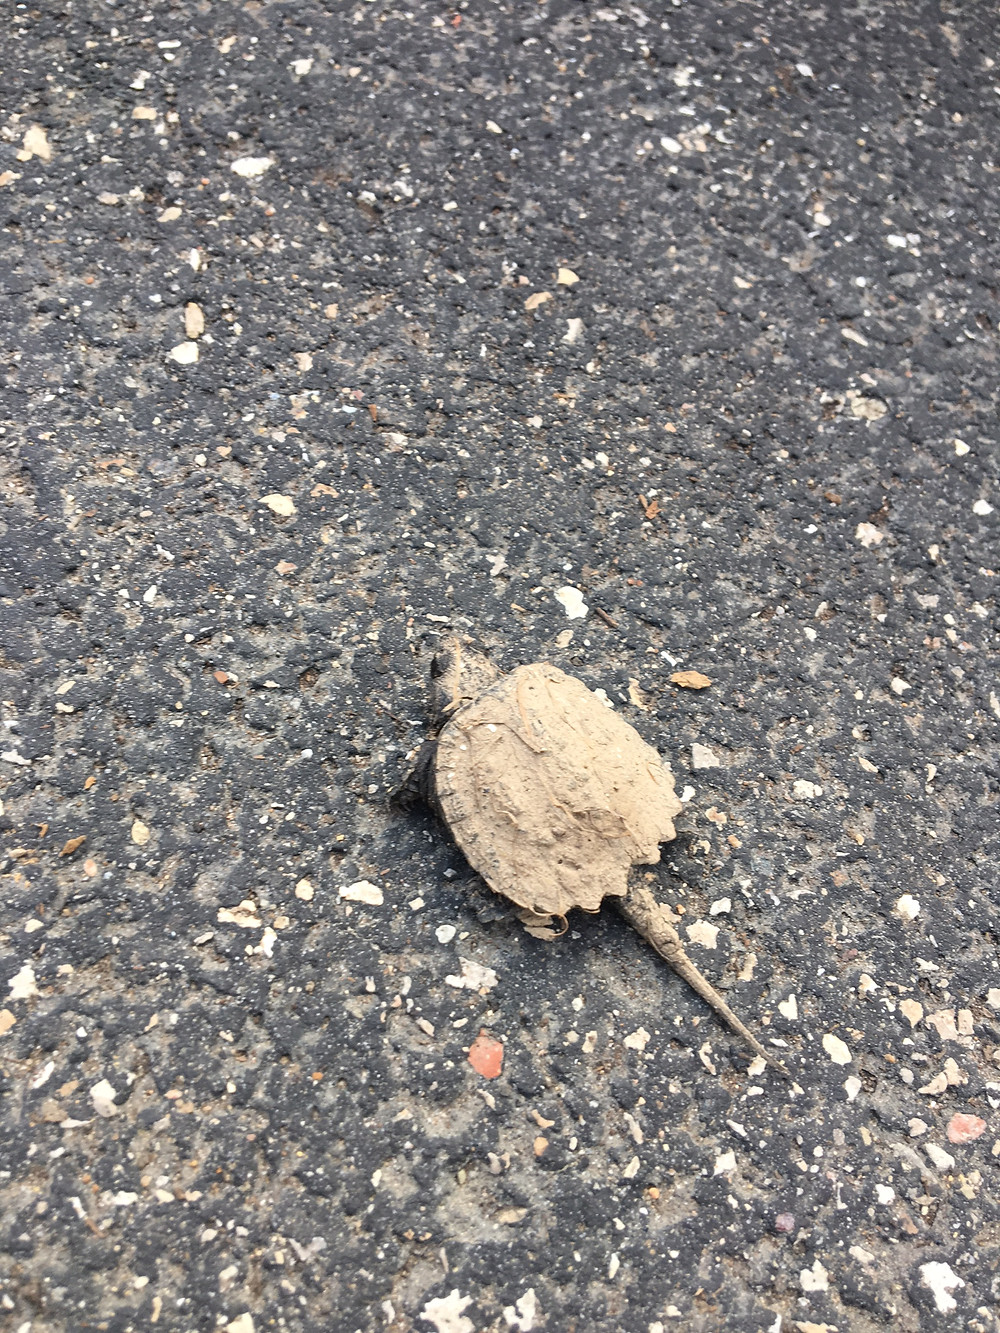 Baby Snapping Turtle, sorry no banana for scale.